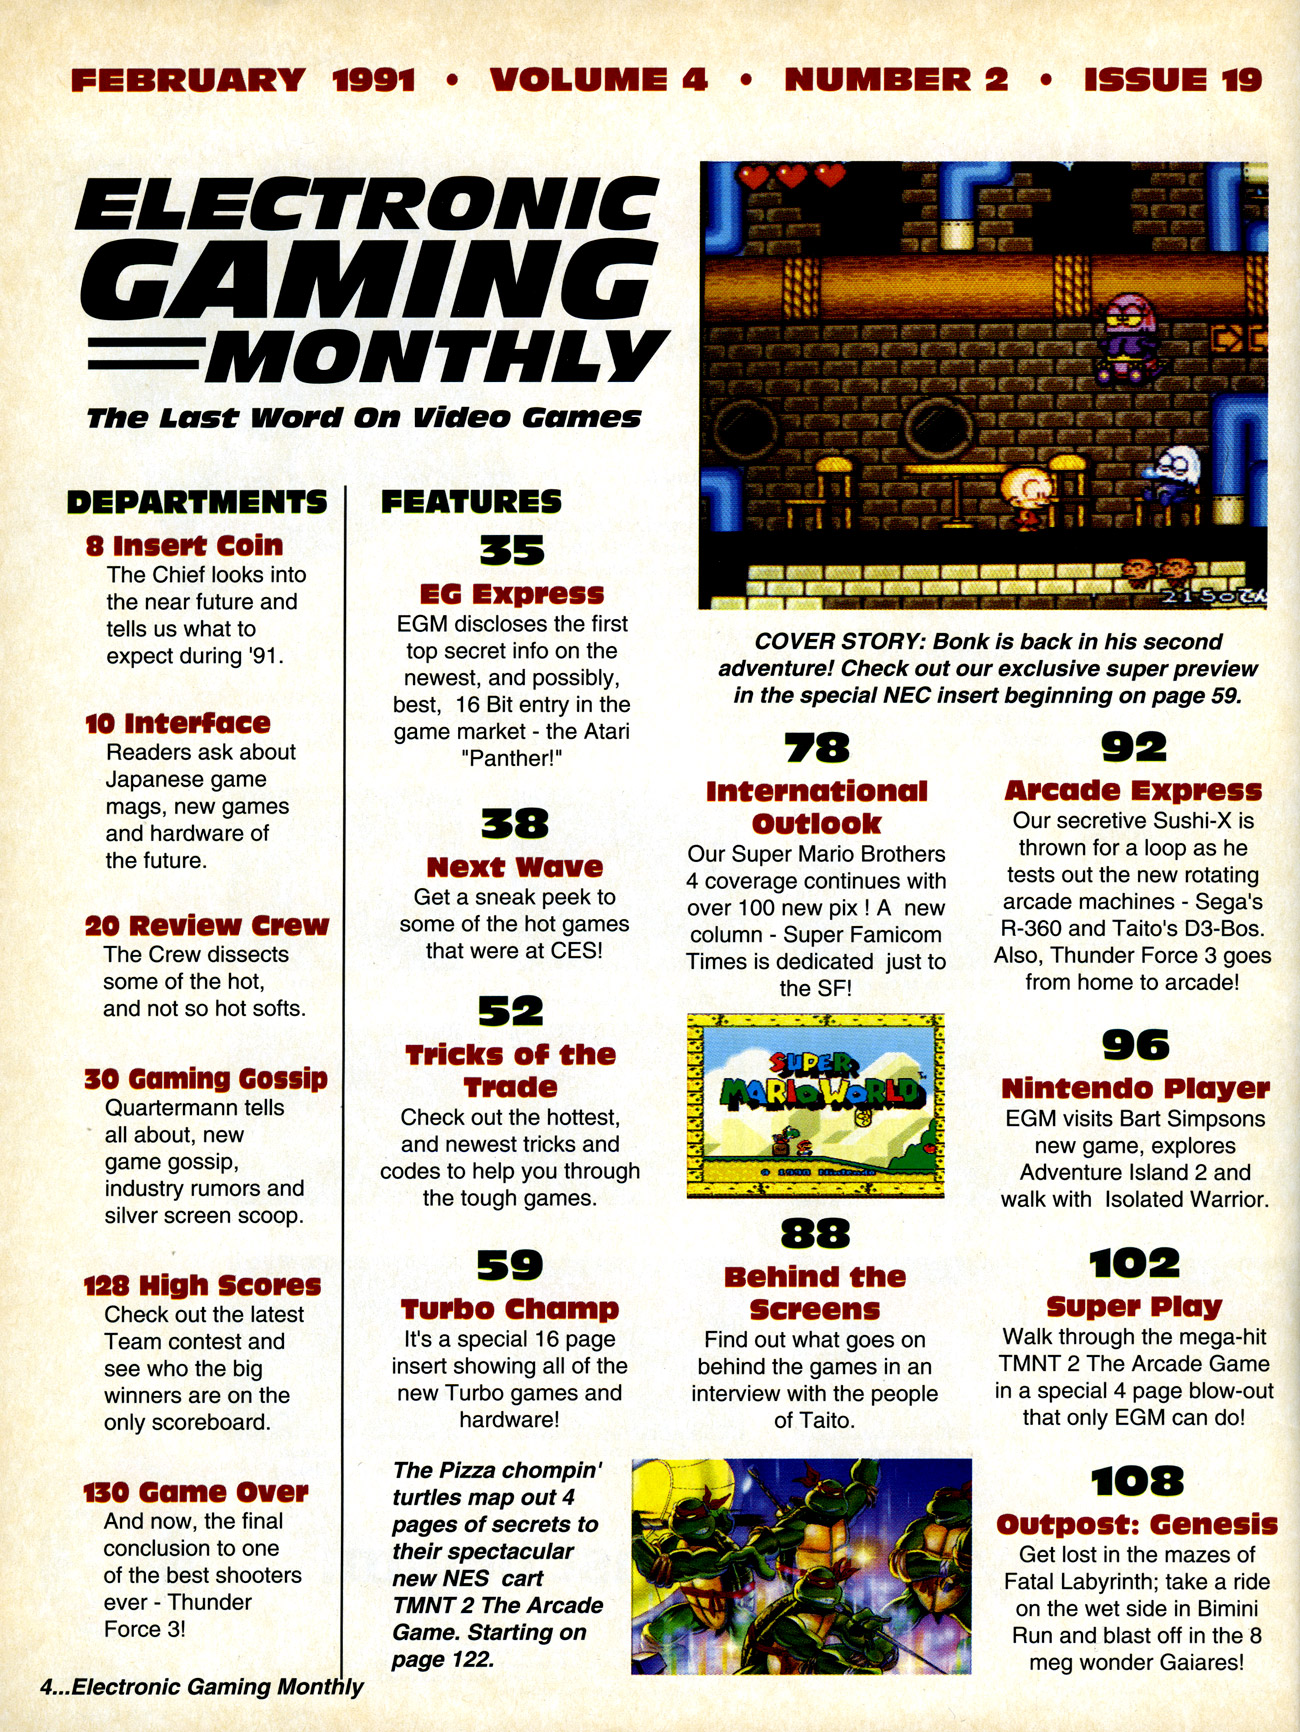 Precise 1990 Sega Columns Ii Jp Video Flyer To Be Distributed All Over The World Manuals & Guides